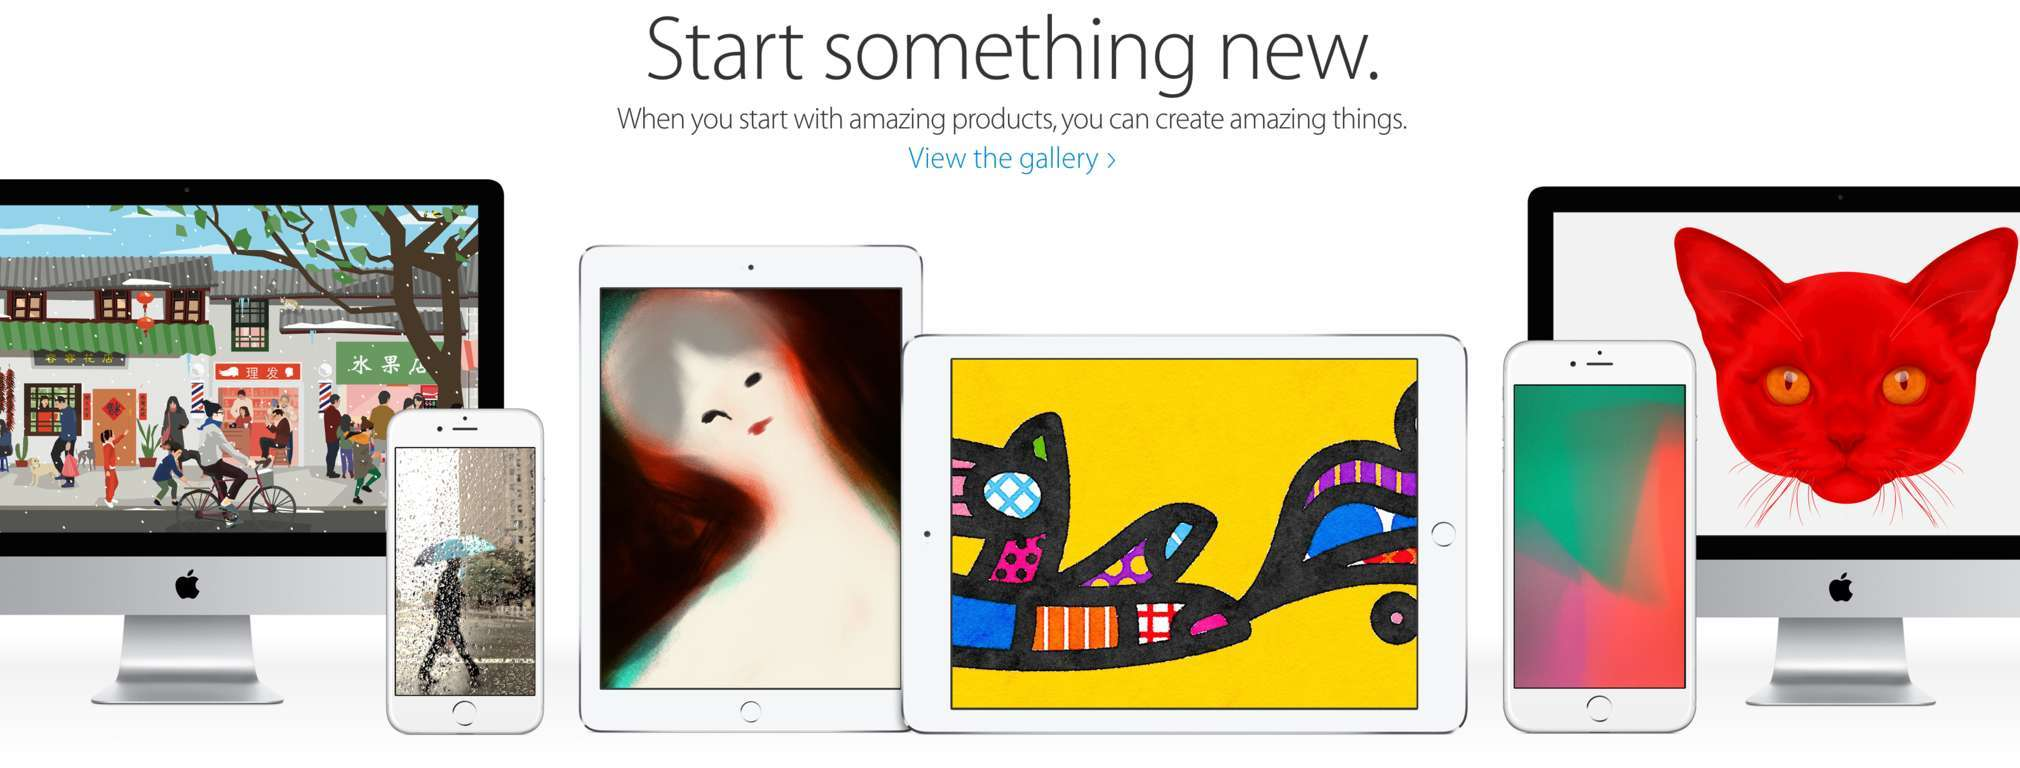 apple-start-something-new